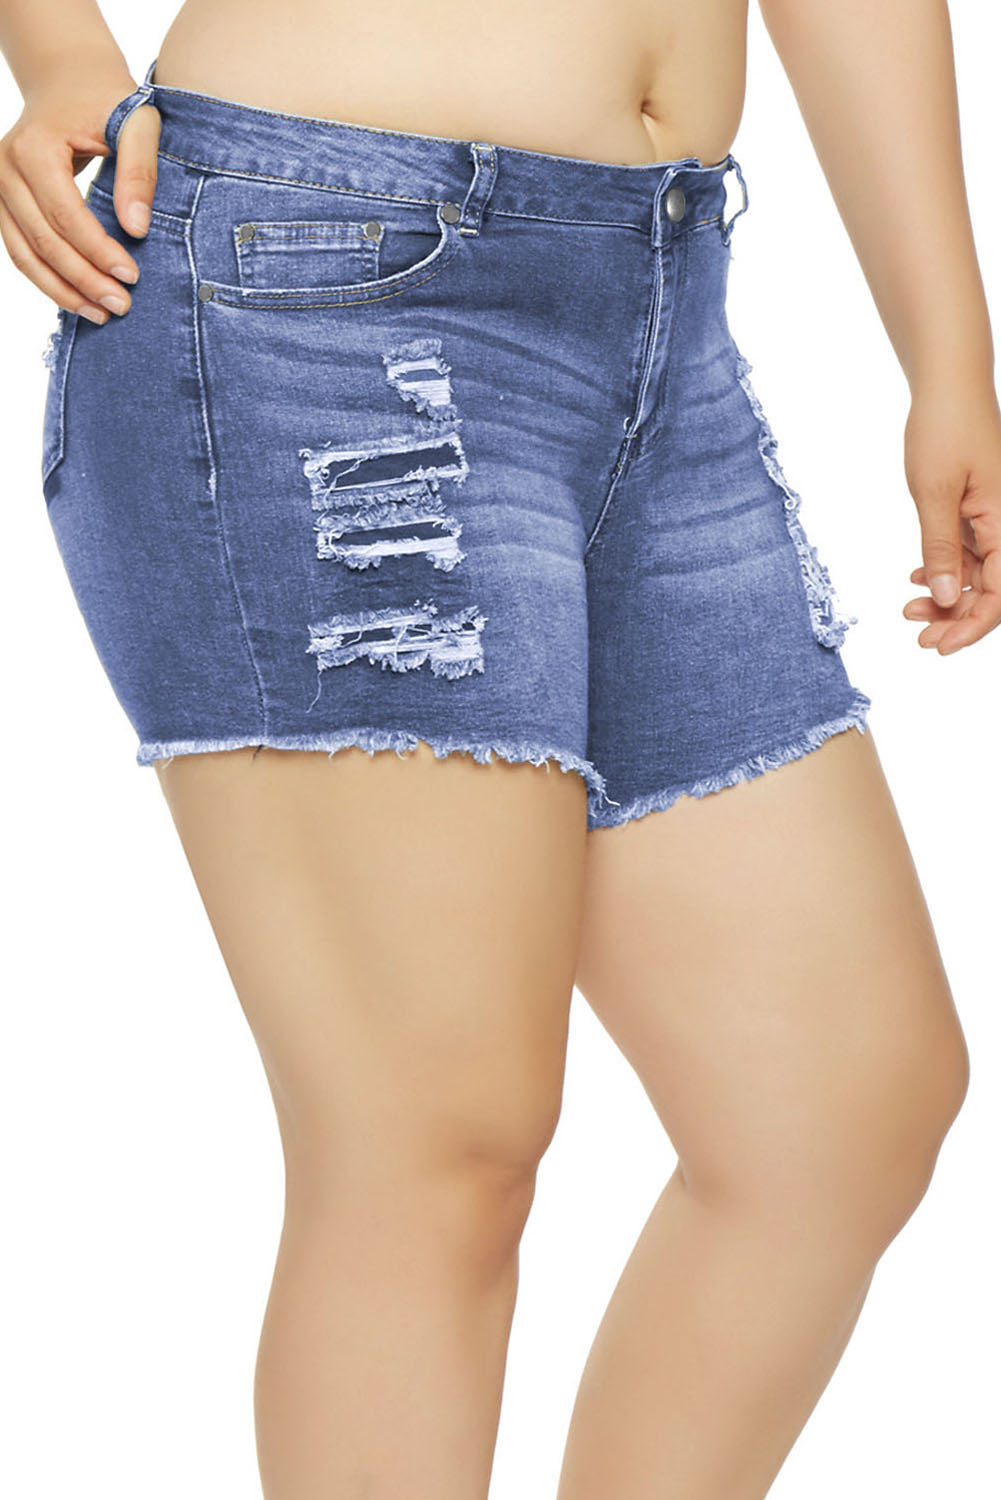 Cut Off Cuffs Light Blue Her Fashion Almost Famous Frayed Denim Shorts